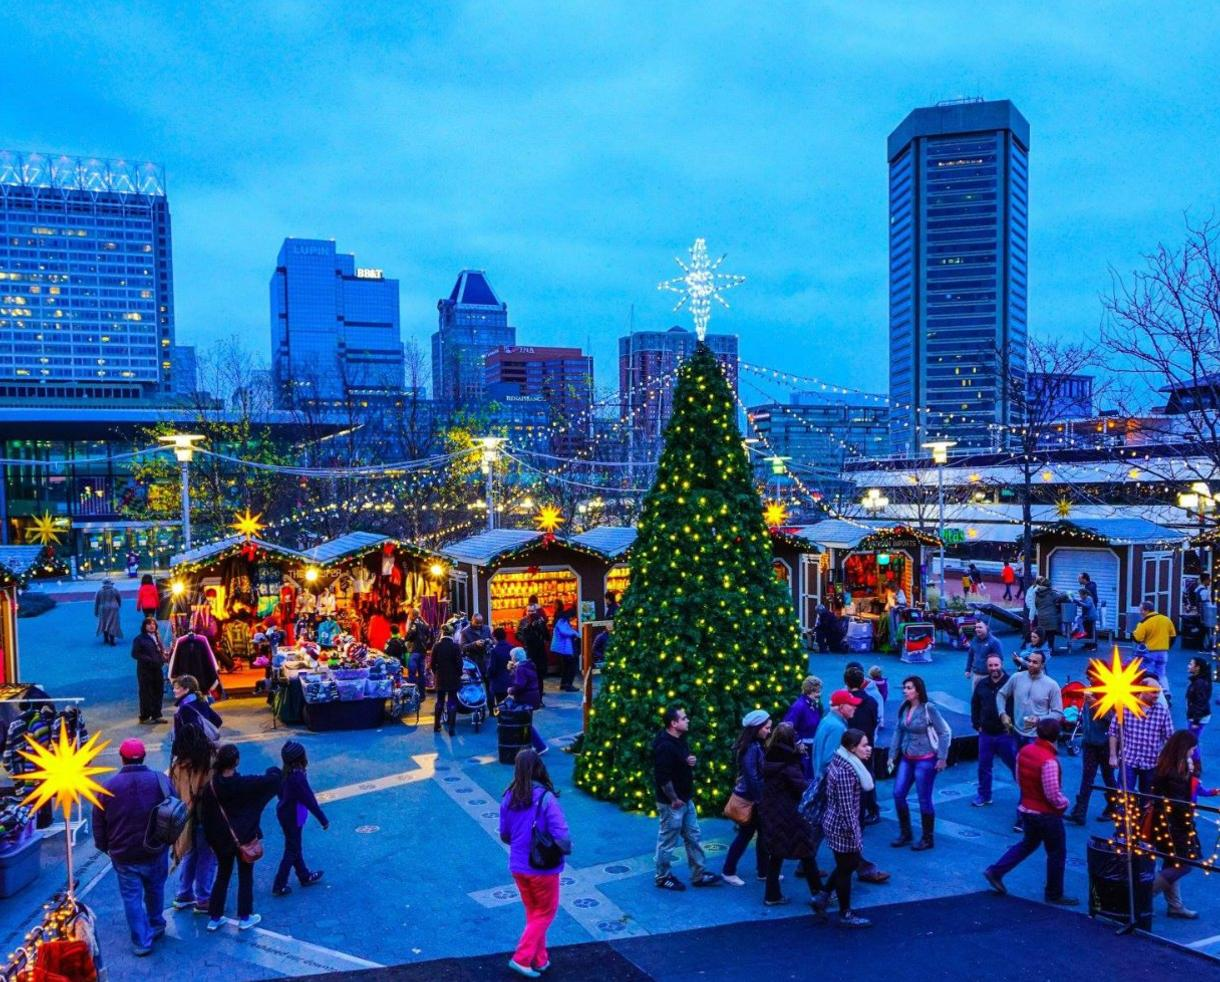 5 for christmas village weekend admission for the whole family or 9 for kids weekday fun - Christmas In Baltimore